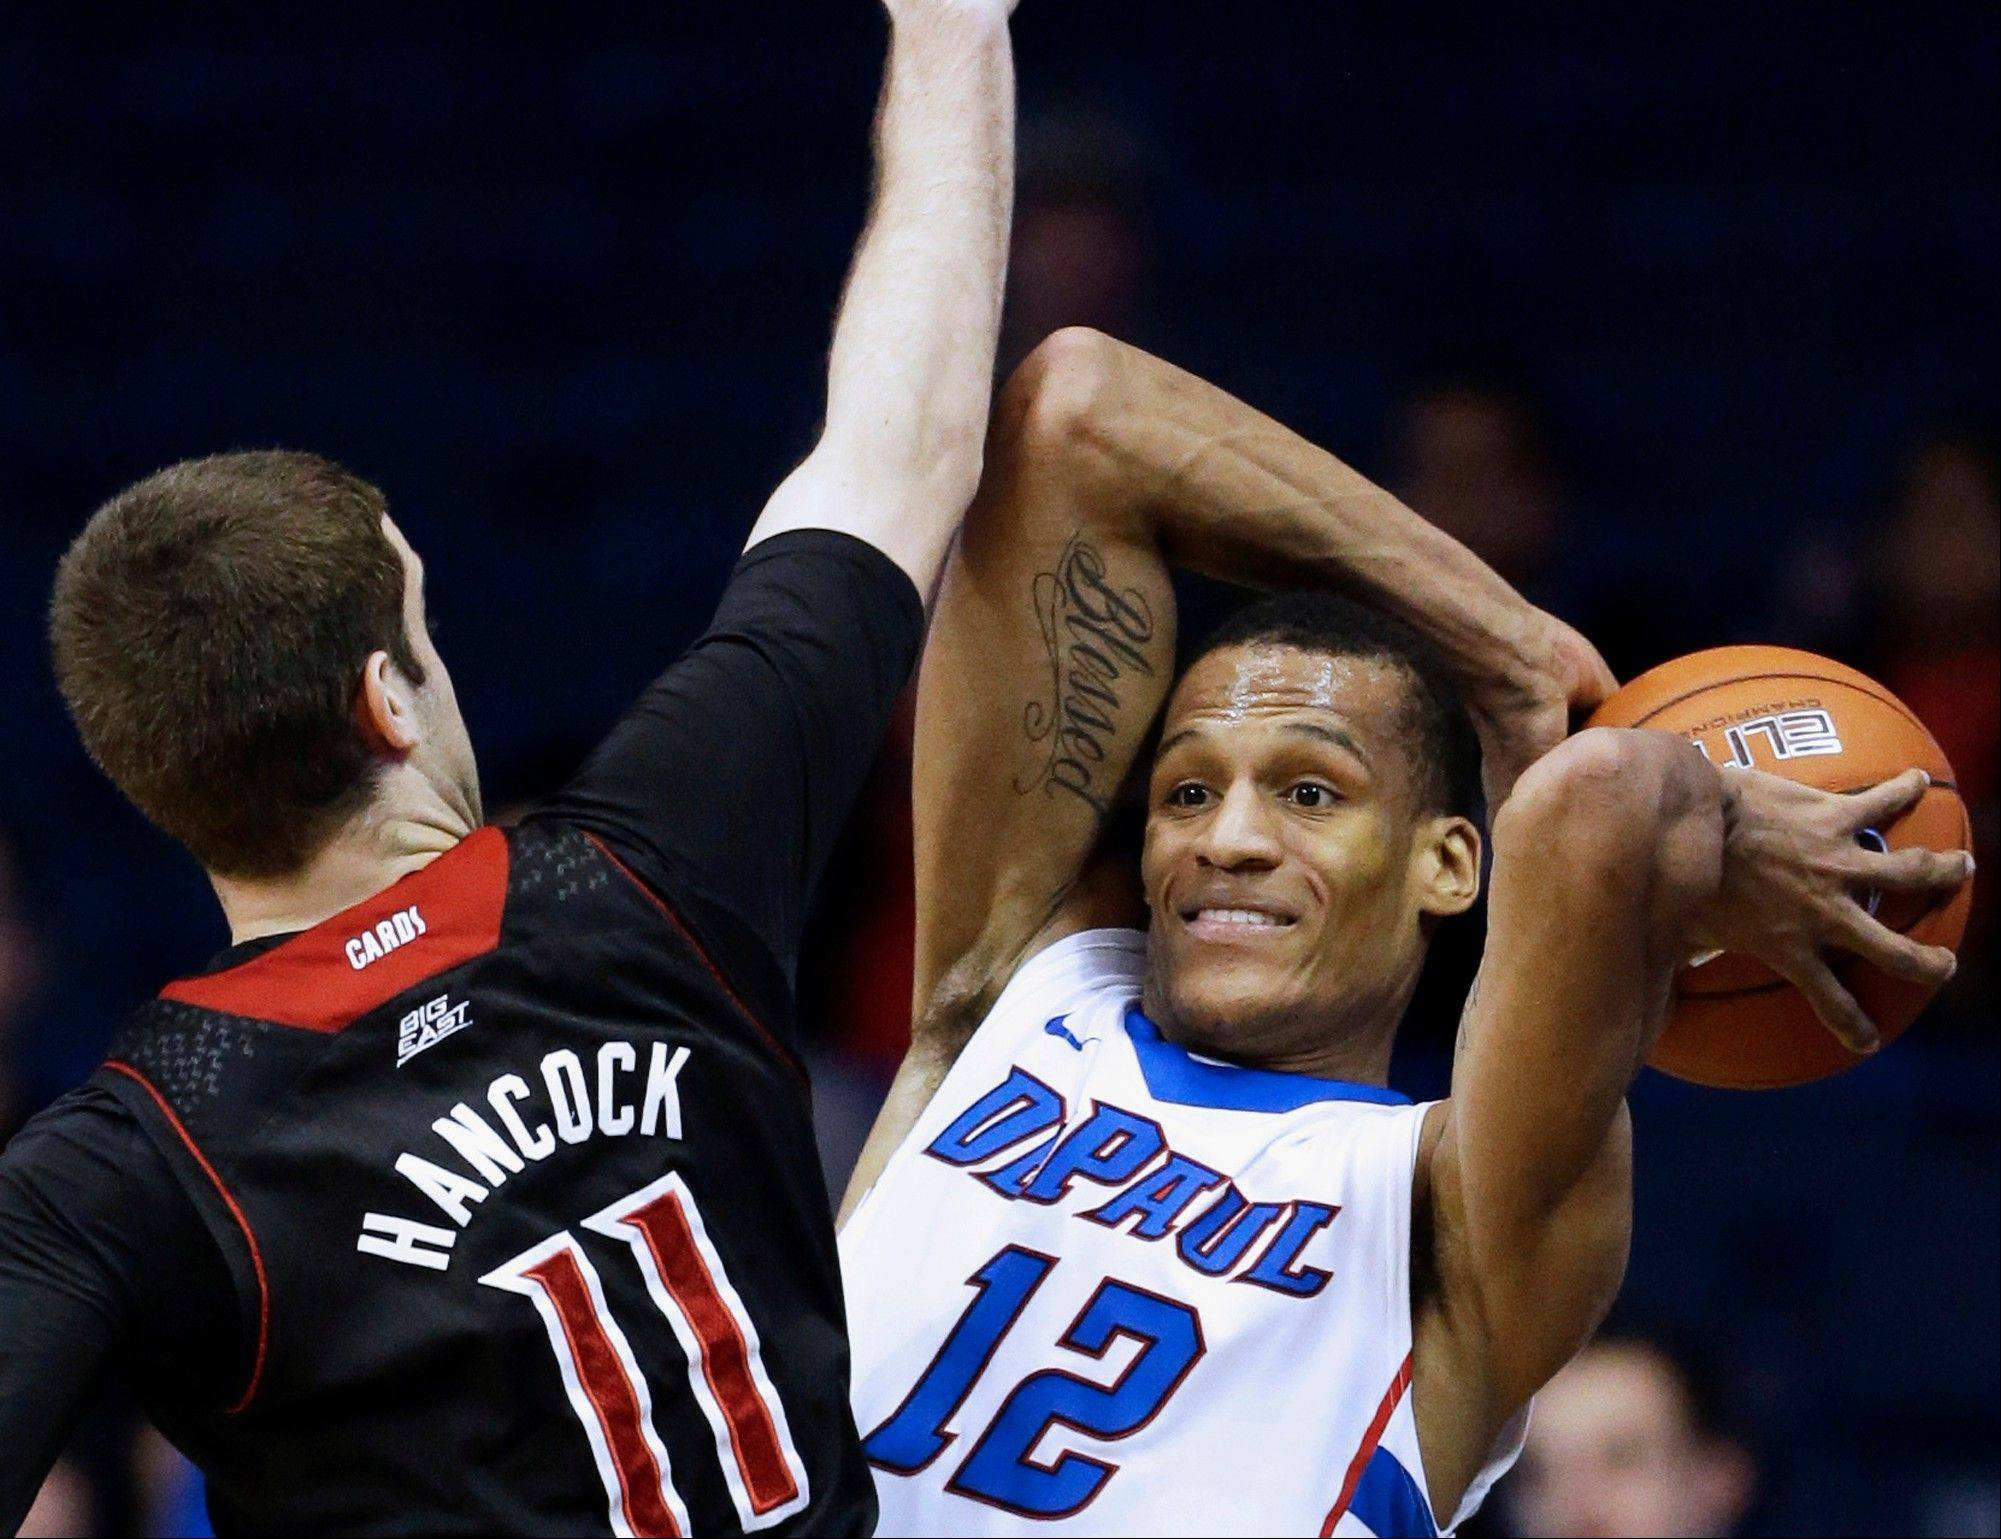 DePaul's Cleveland Melvin, right, looks to pass against Louisville's Luke Hancock during a game last season in Rosemont.